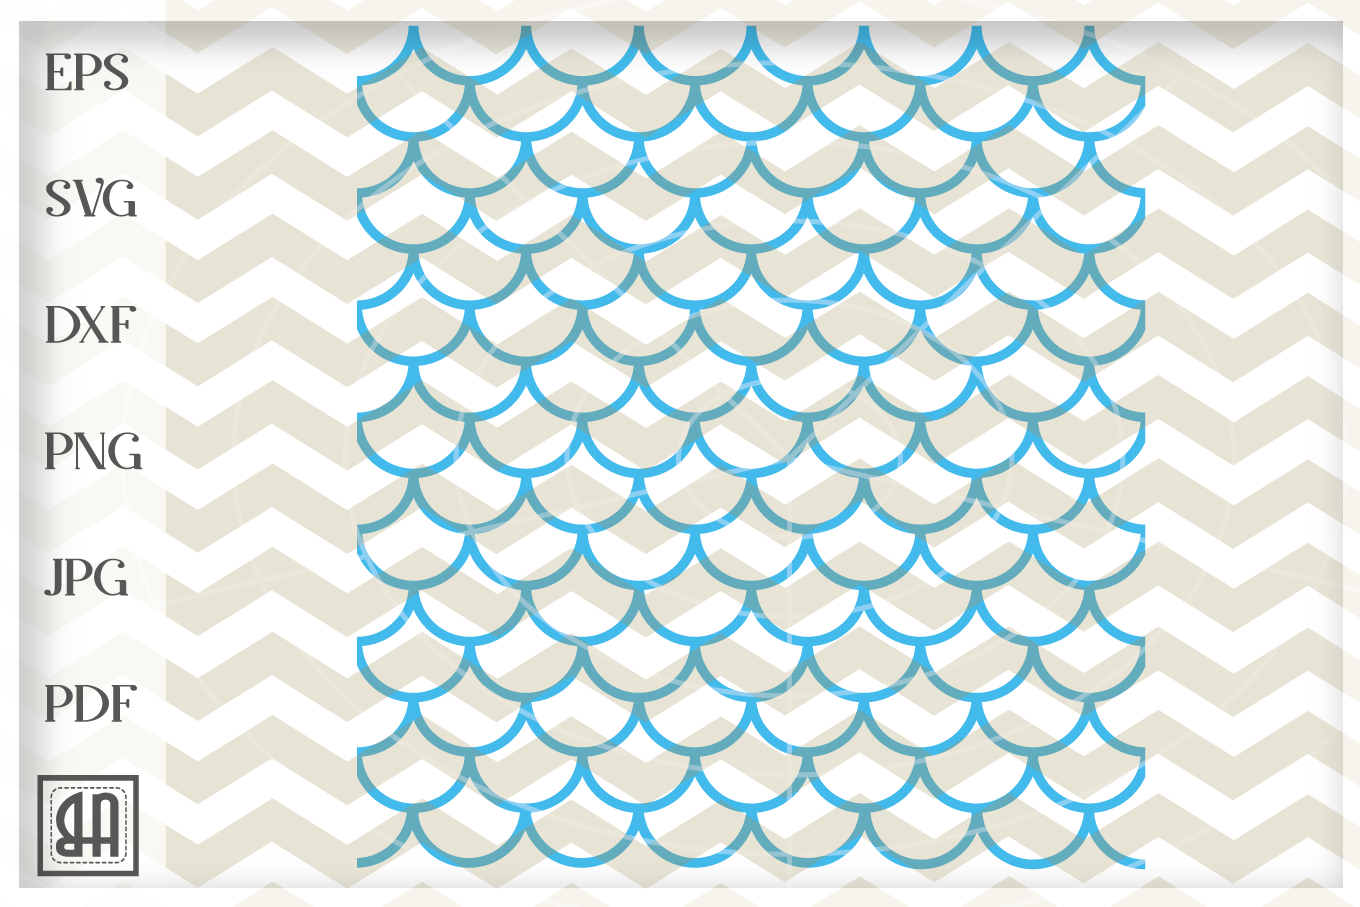 Mermaid seamless pattern, Mermaid scale svg, Fish scale SVG example image 3